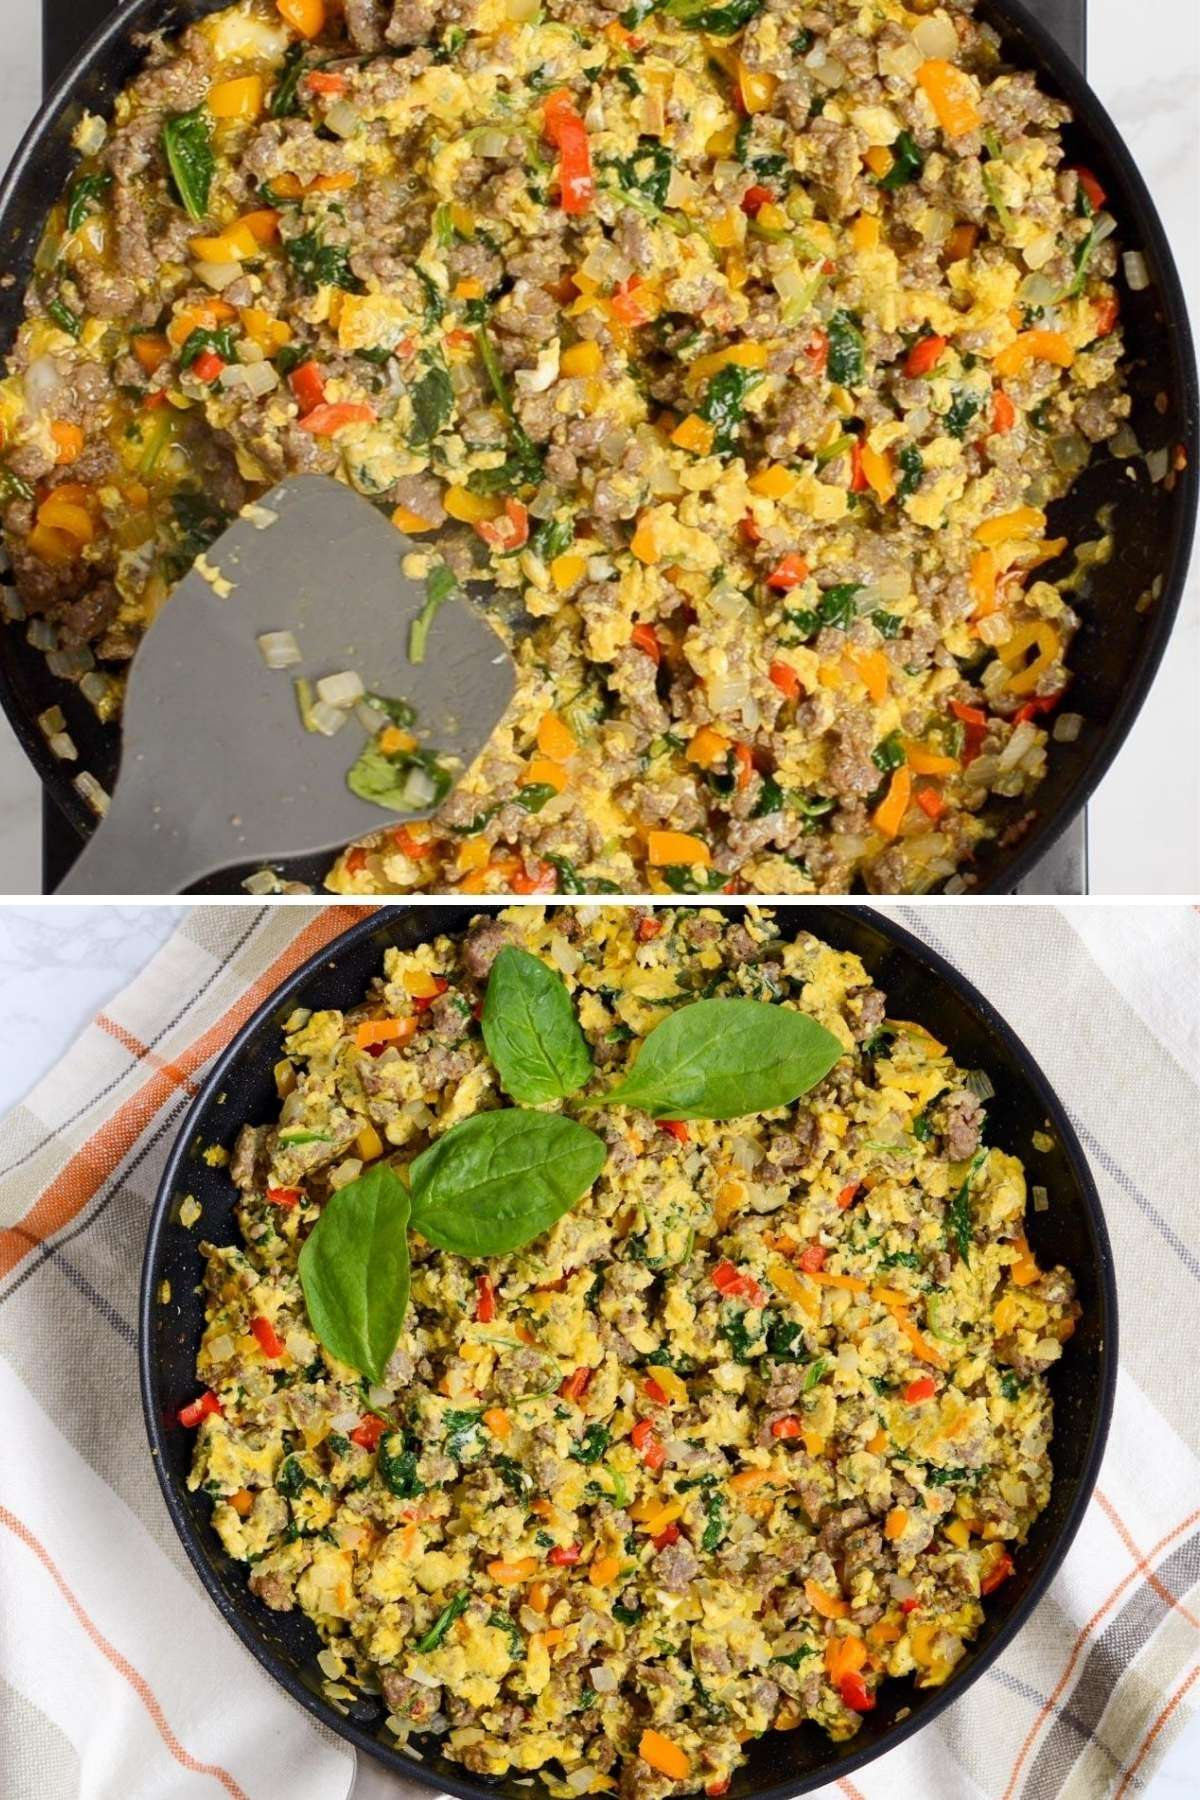 Finishing up frying breakfast in a skillet and the finished dish in the bottom picture with some spinach leaves for extra flair.